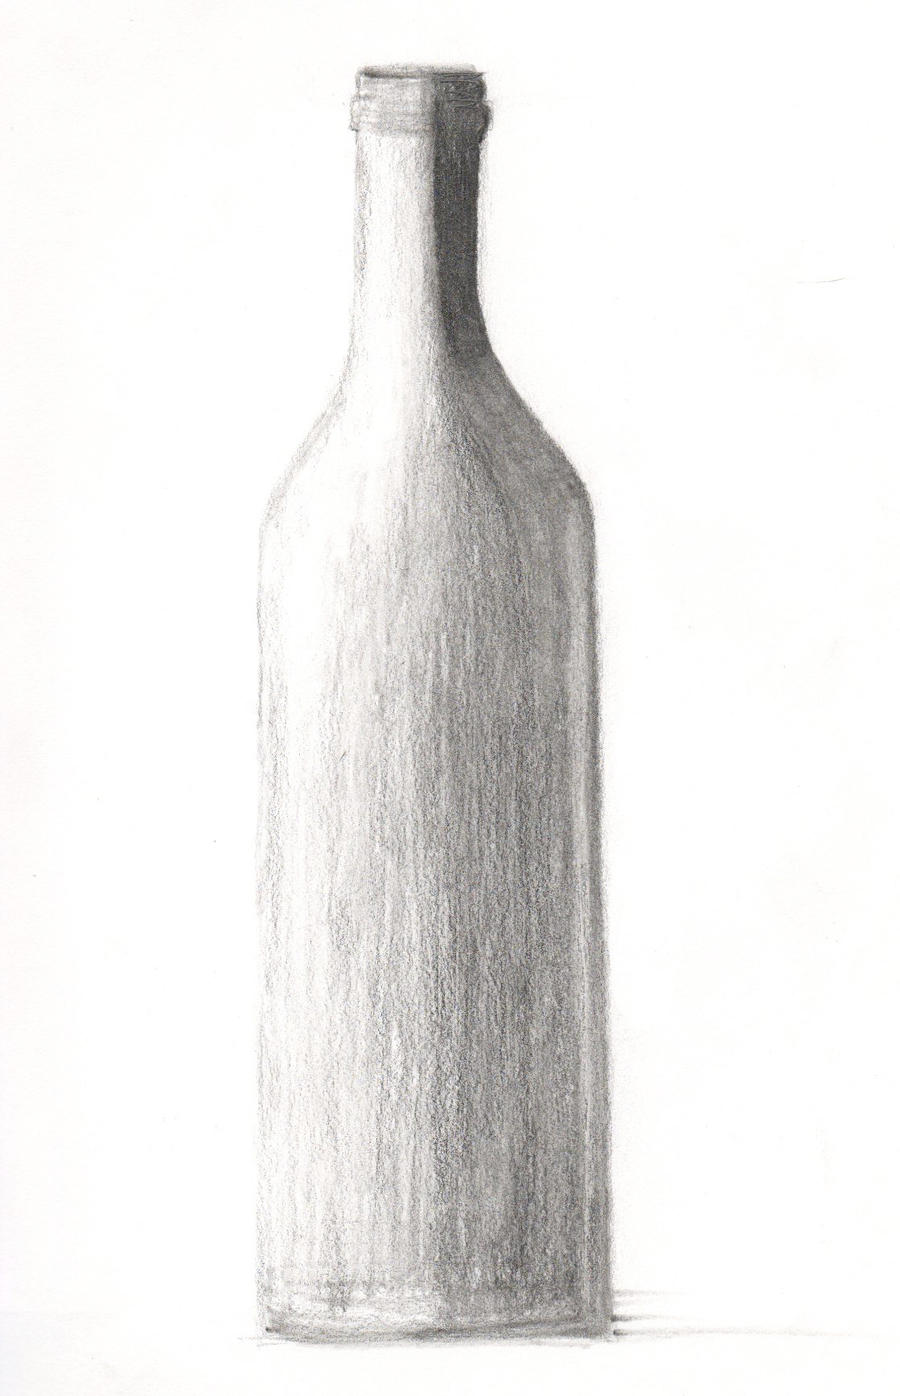 Drawing 101 - Wine Bottle 1 by xycolsen on DeviantArt